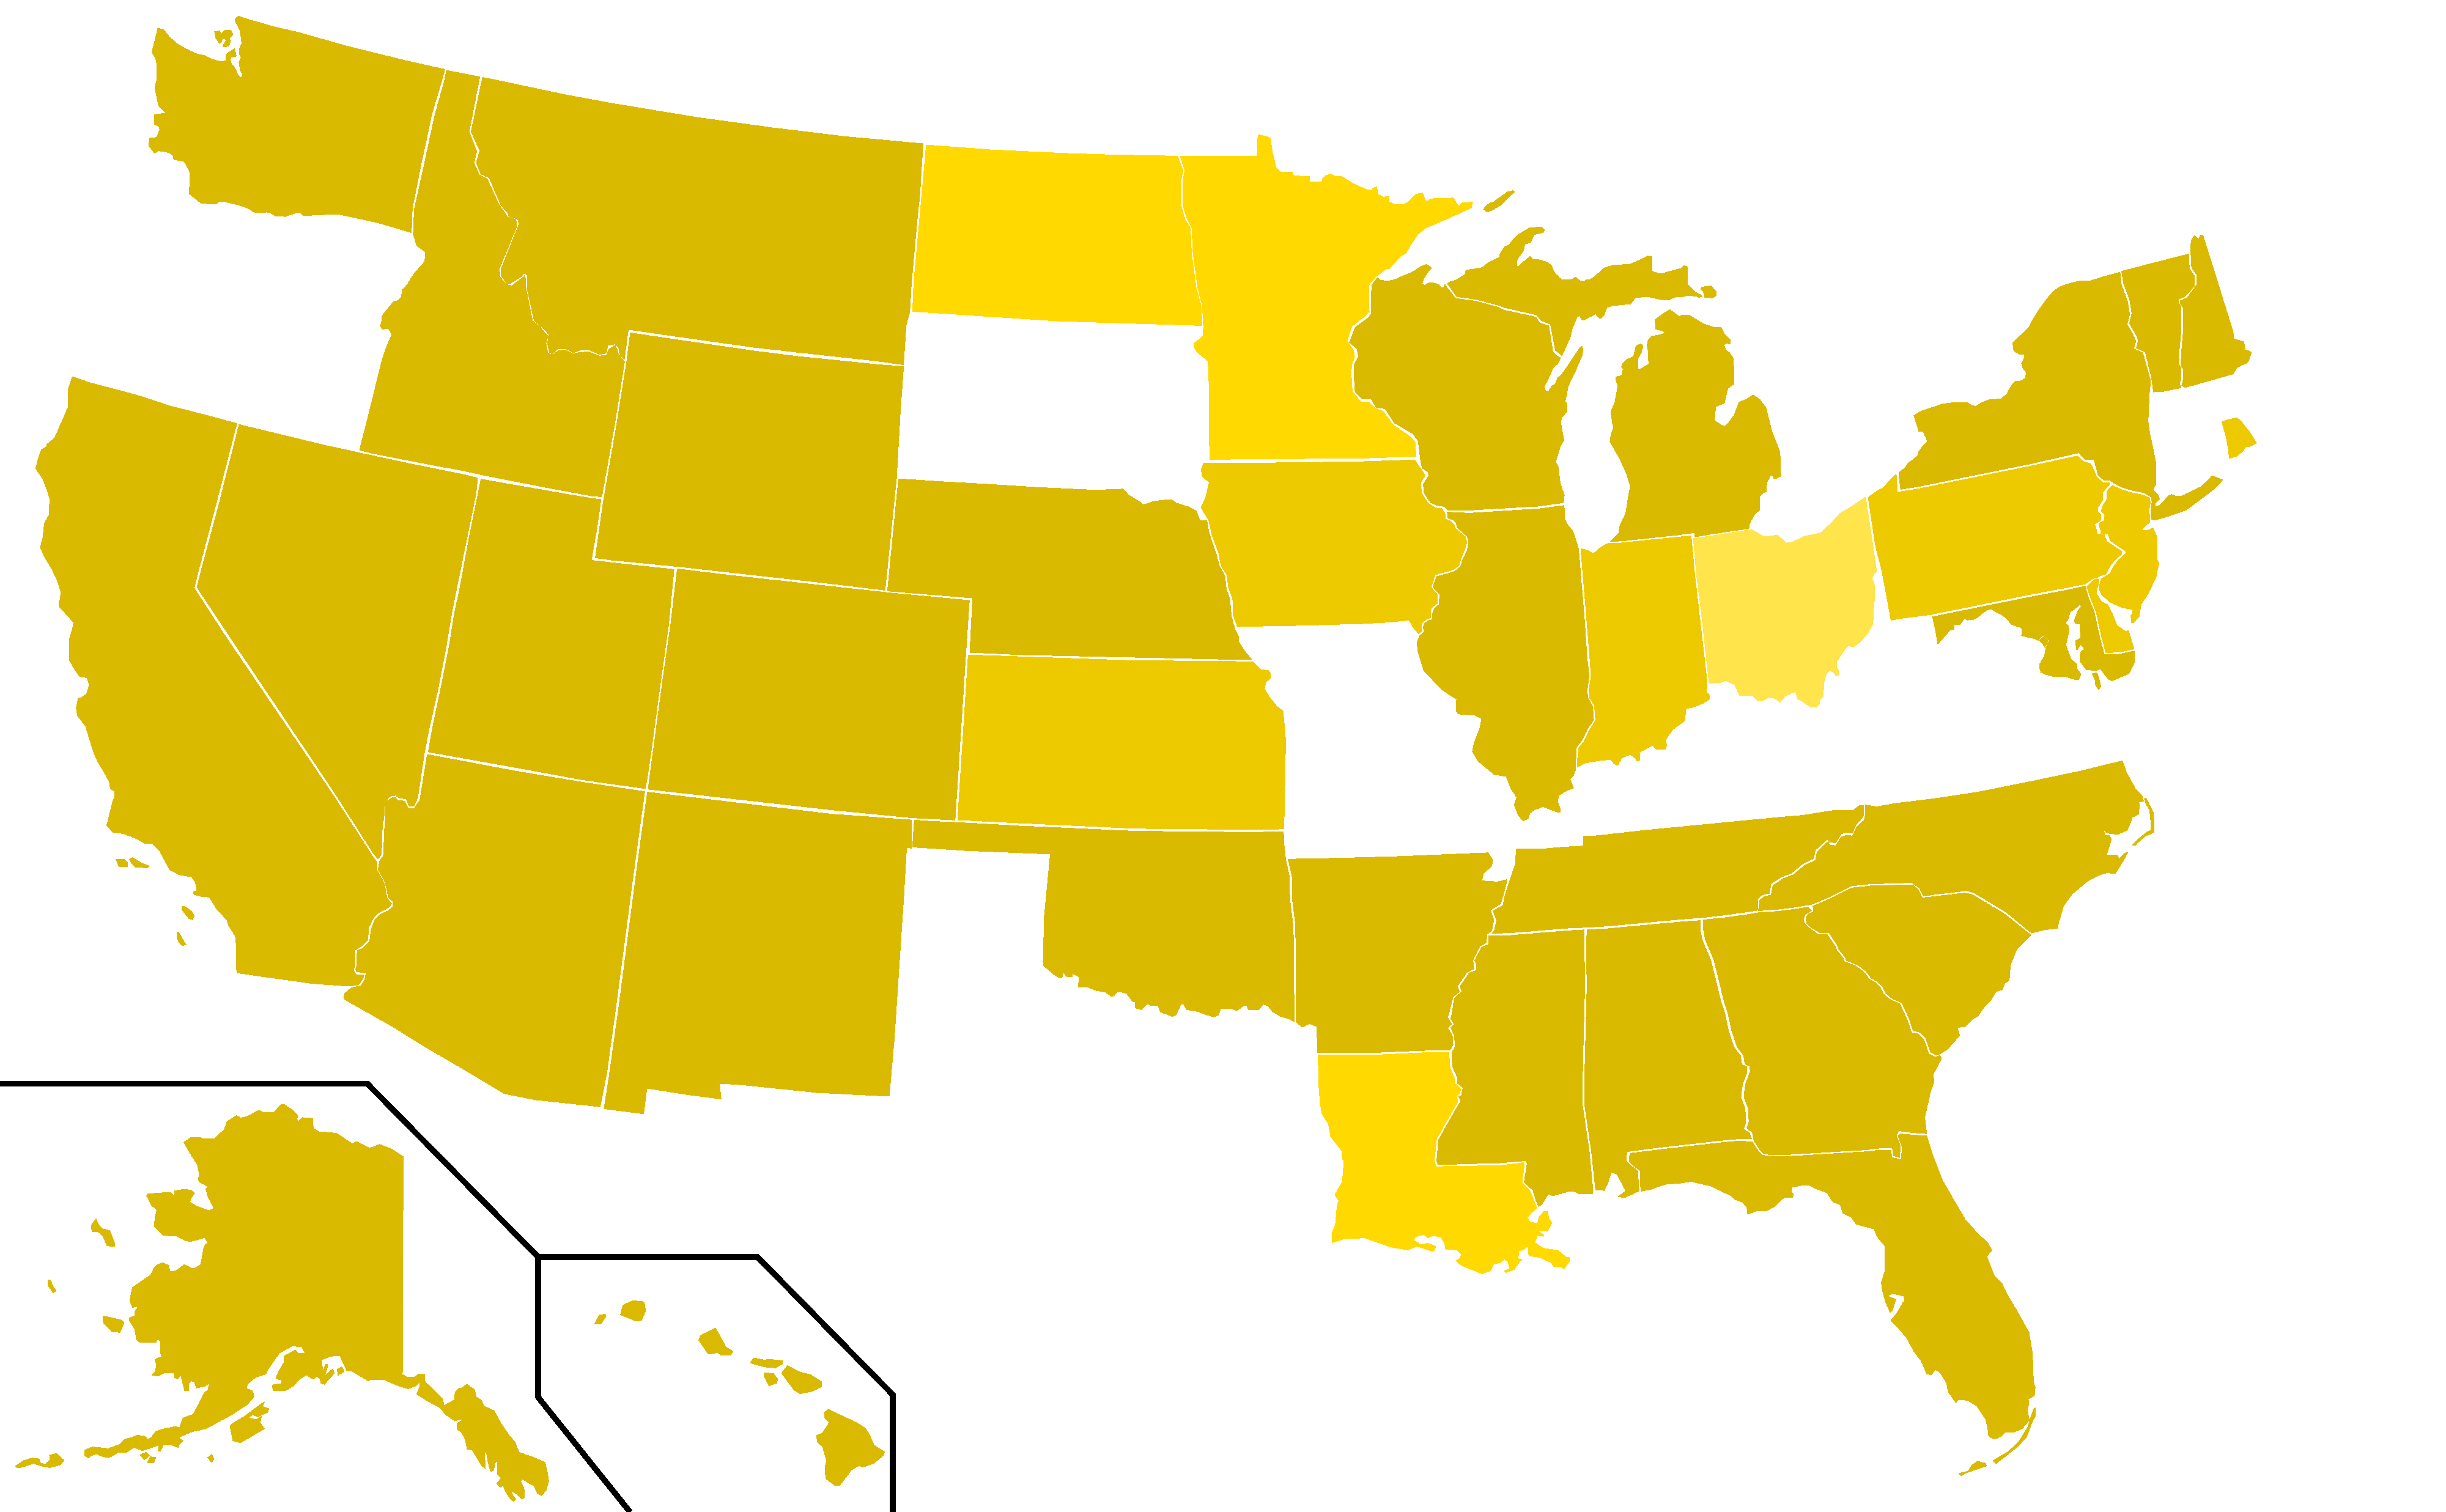 file libertarian party presidential election results 1984 ordinal united states of america